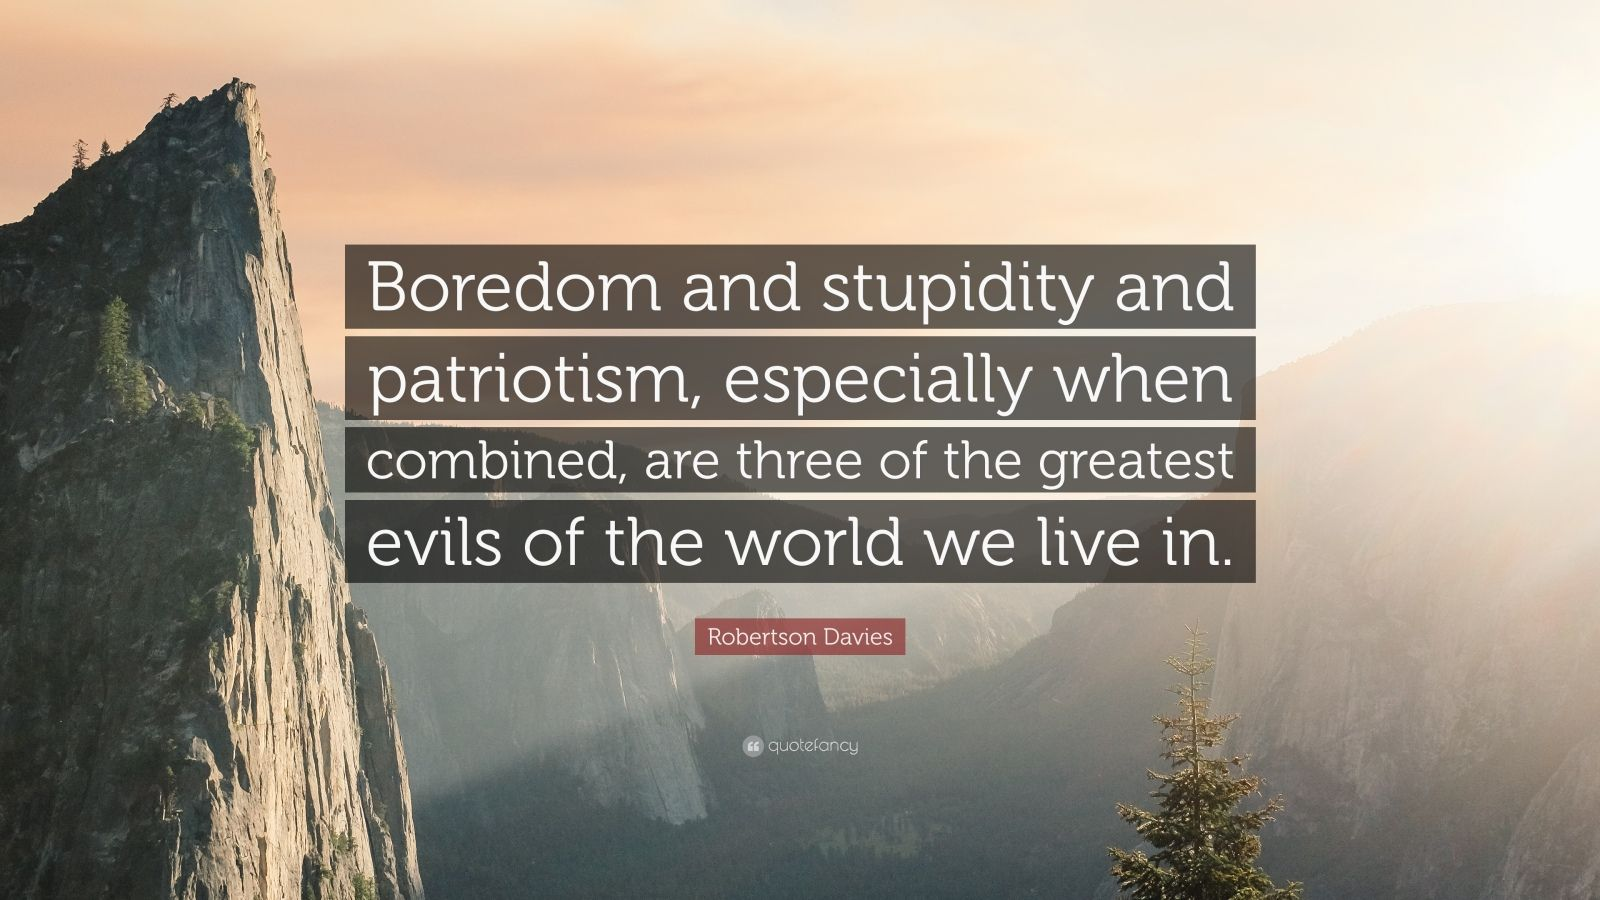 """Robertson Davies Quote: """"Boredom and stupidity and patriotism, especially when combined, are three of the greatest evils of the world we live in."""""""